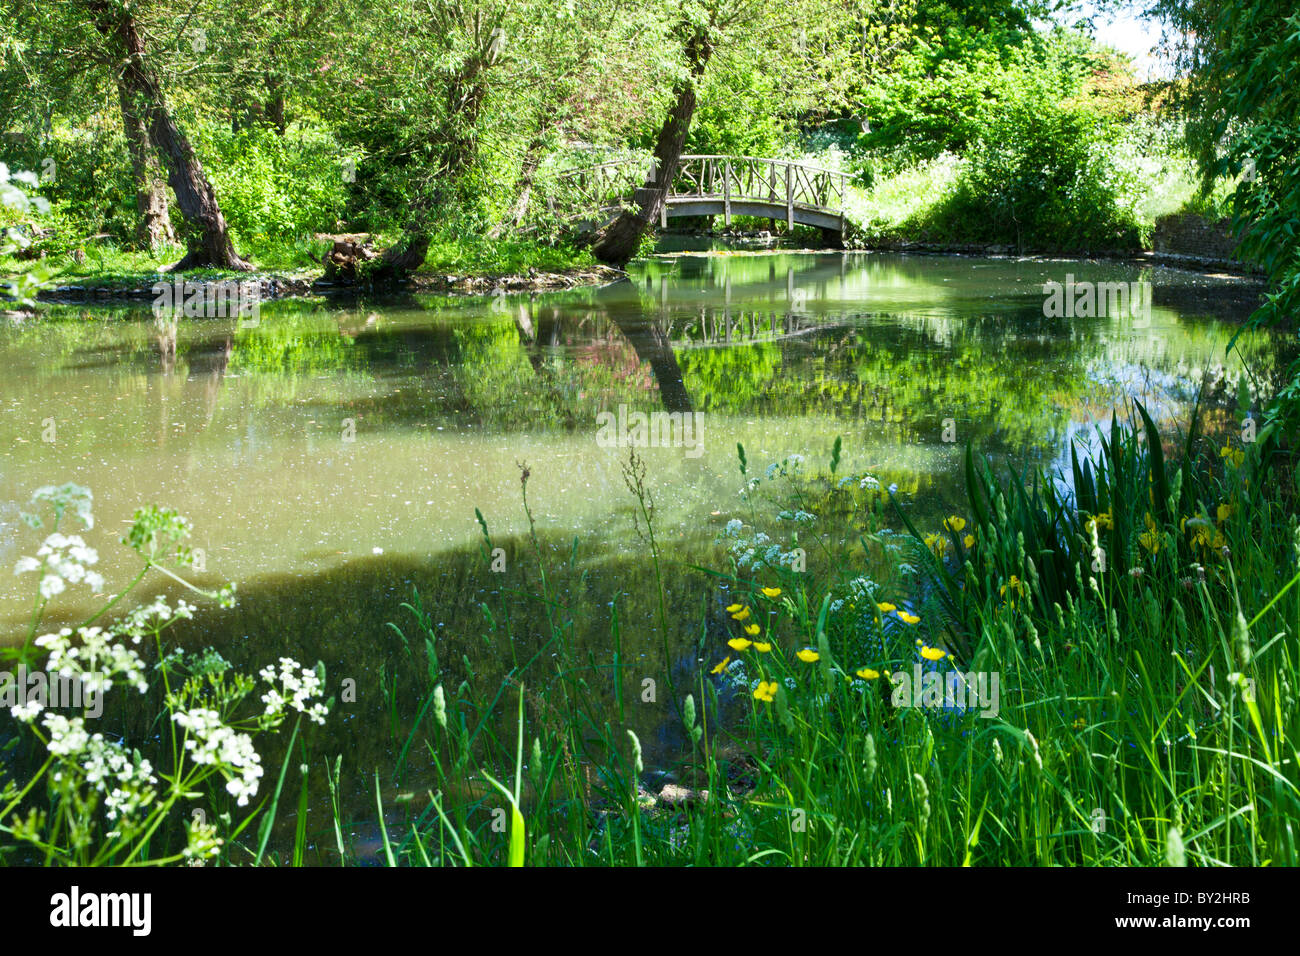 A large ornamental pond or small lake with a rustic wooden for Ornamental pond